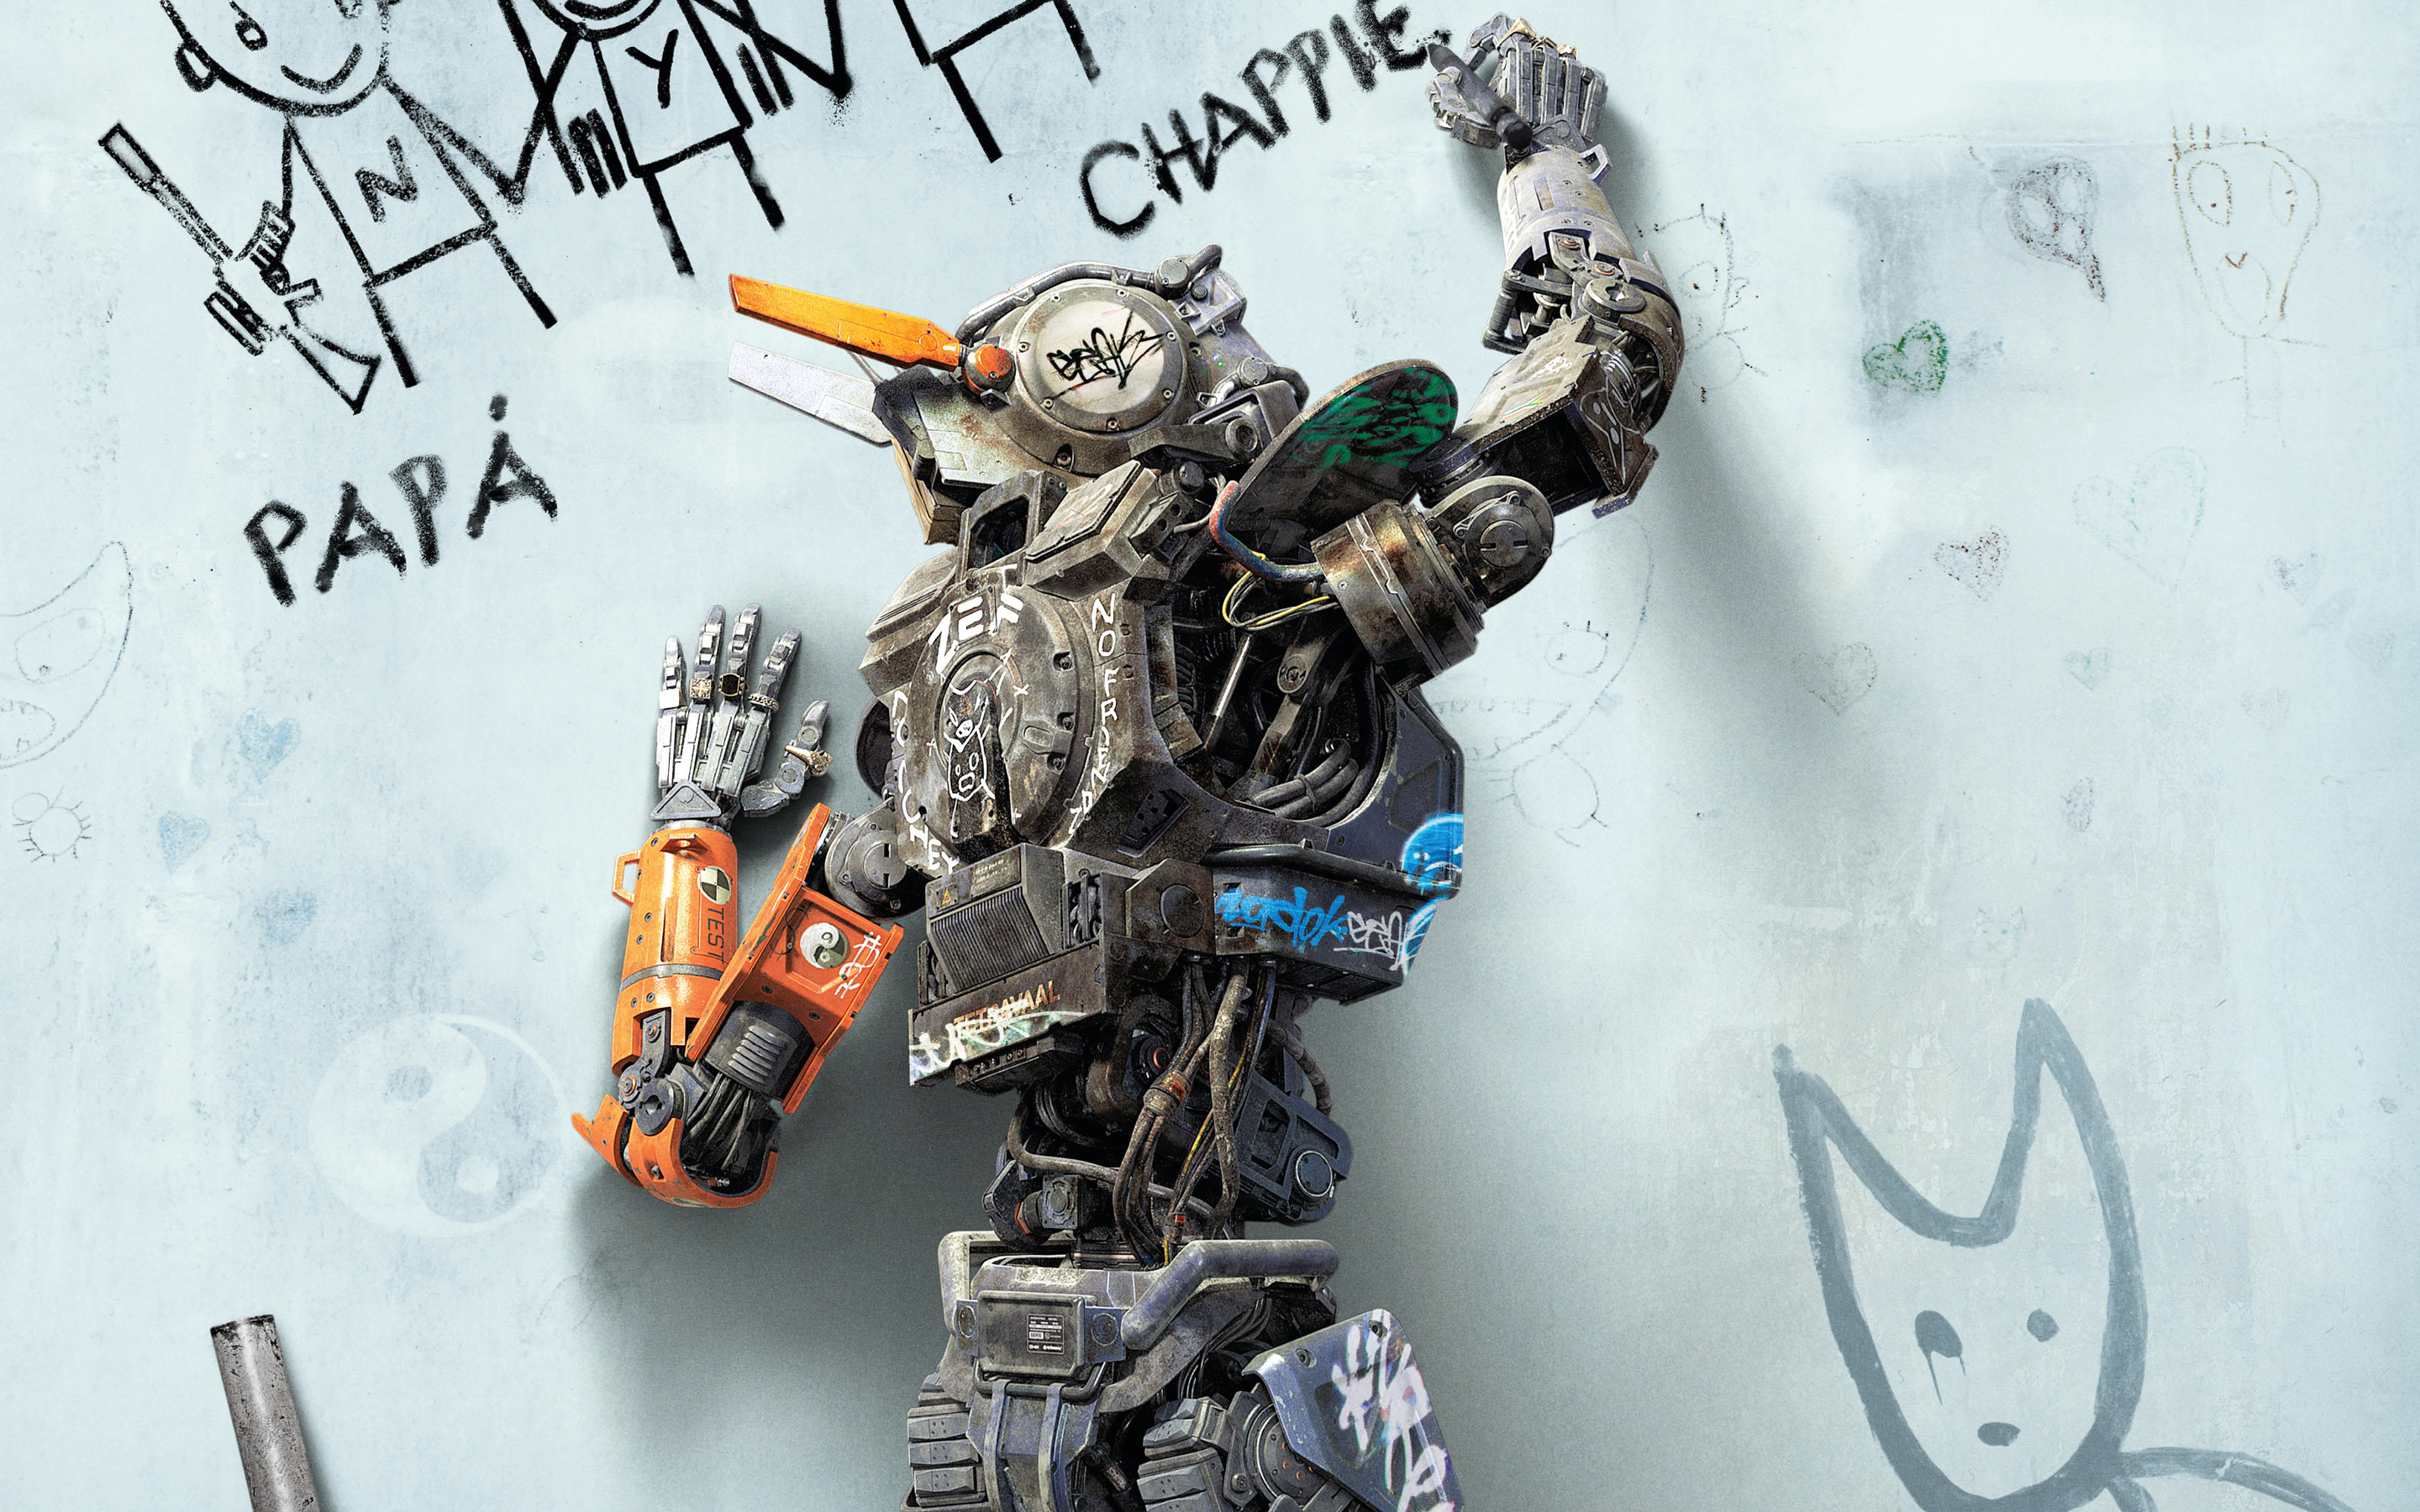 Chappie Wallpapers Pictures Images 2880x1800